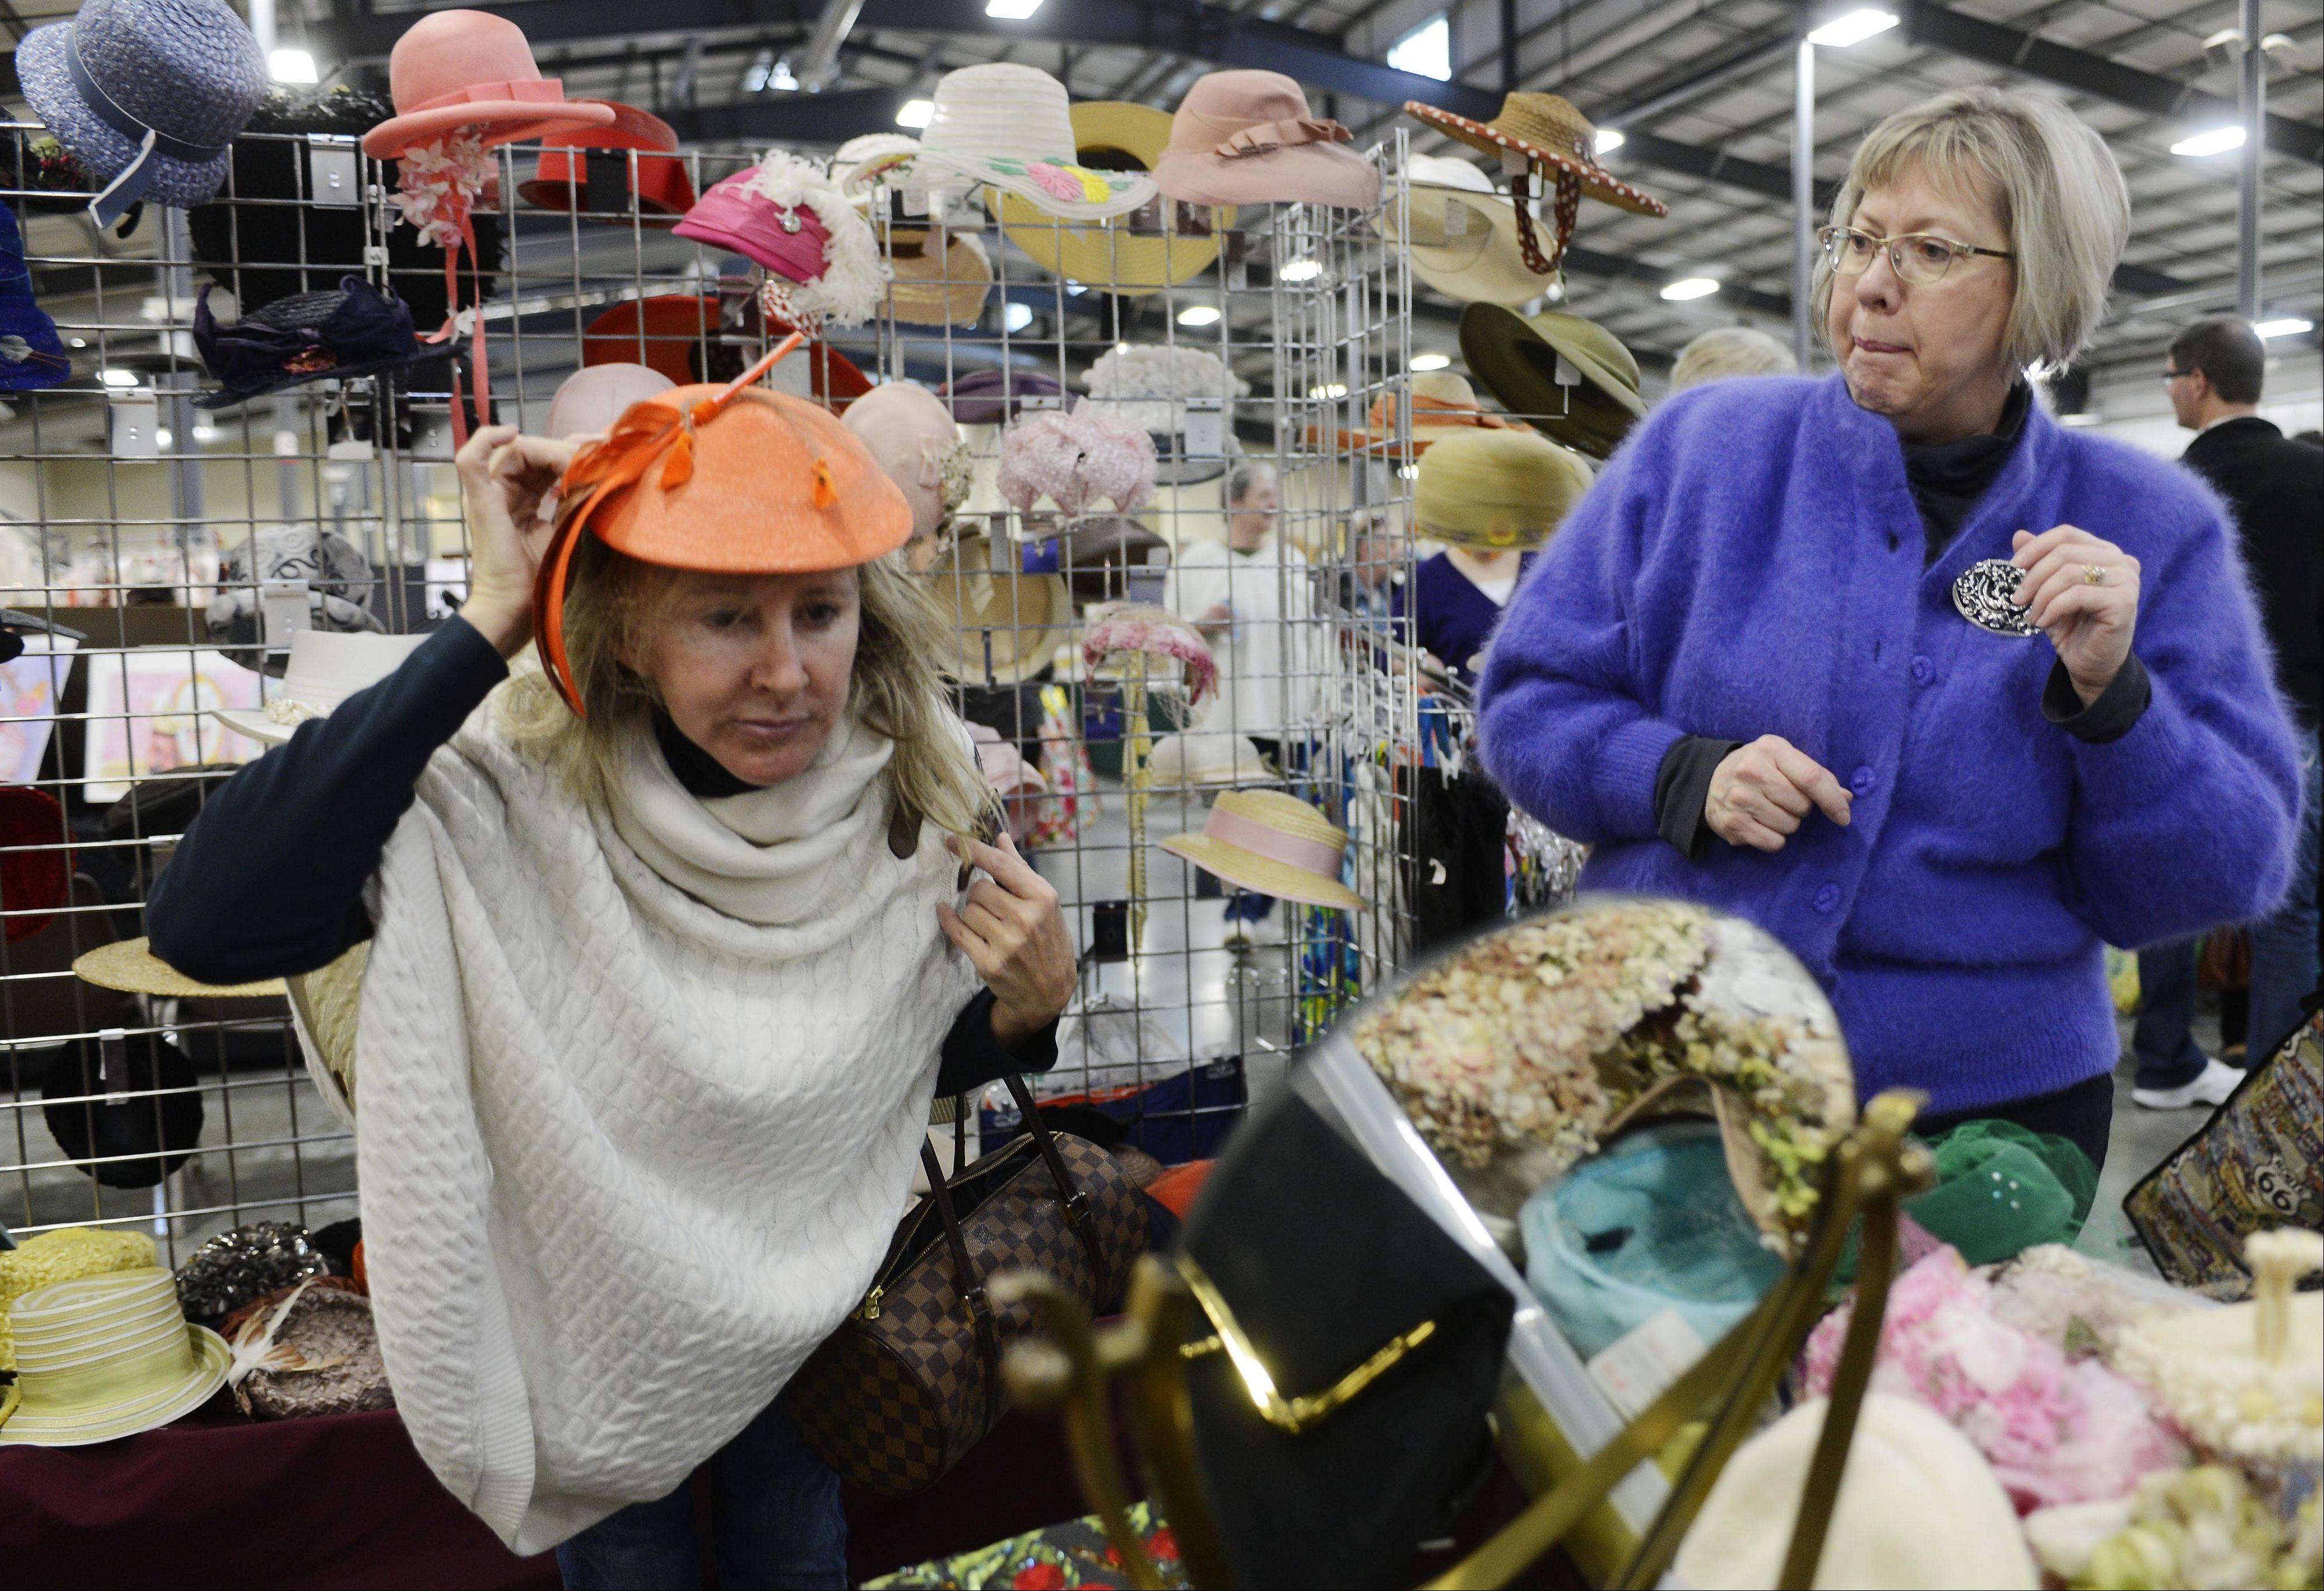 Maura Shackleton Schuster of Lake Forest, left, tries on a Gimble Brothers pork pie hat with the assistance of dealer Cindy Budde of Milwaukee during the Antiques and Collectible Flea Market at the Lake County Fairgrounds in Grayslake Saturday.